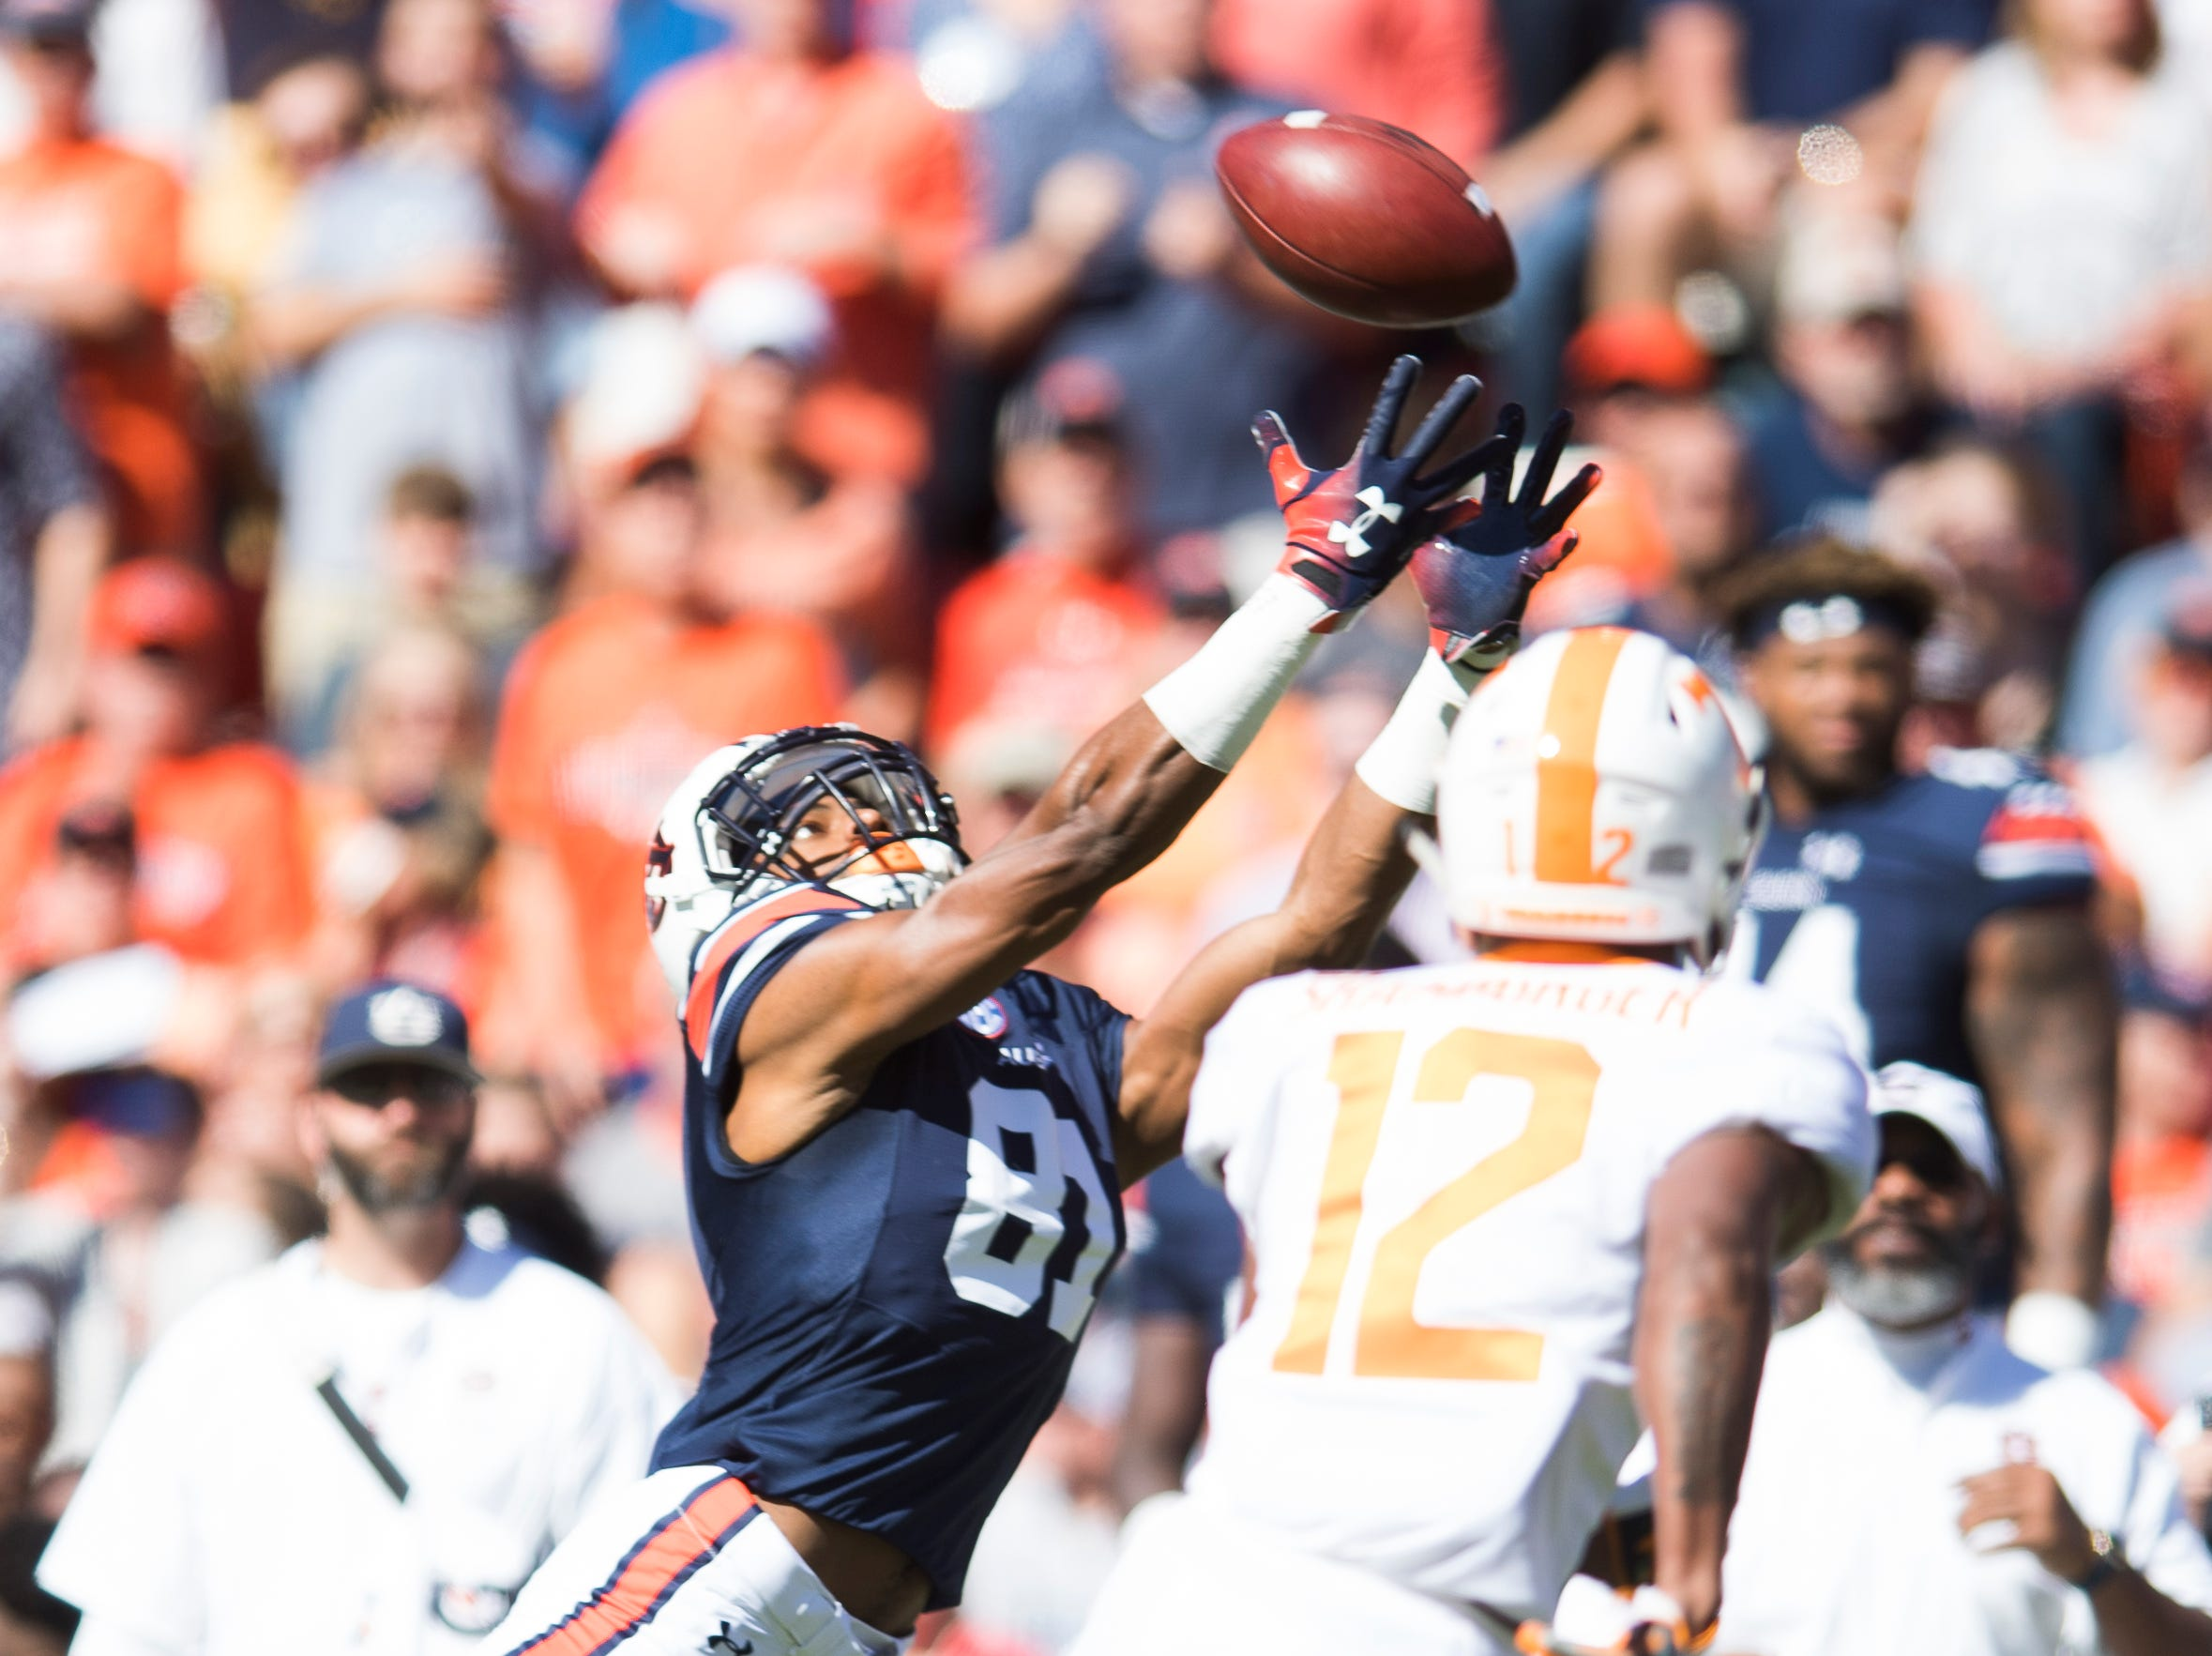 Auburn wide receiver Darius Slayton (81) reaches for a pass but is incomplete as Tennessee quarterback JT Shrout (12) defends during a game between Tennessee and Auburn at Jordan-Hare Stadium in Auburn, Alabama on Saturday, October 13, 2018.